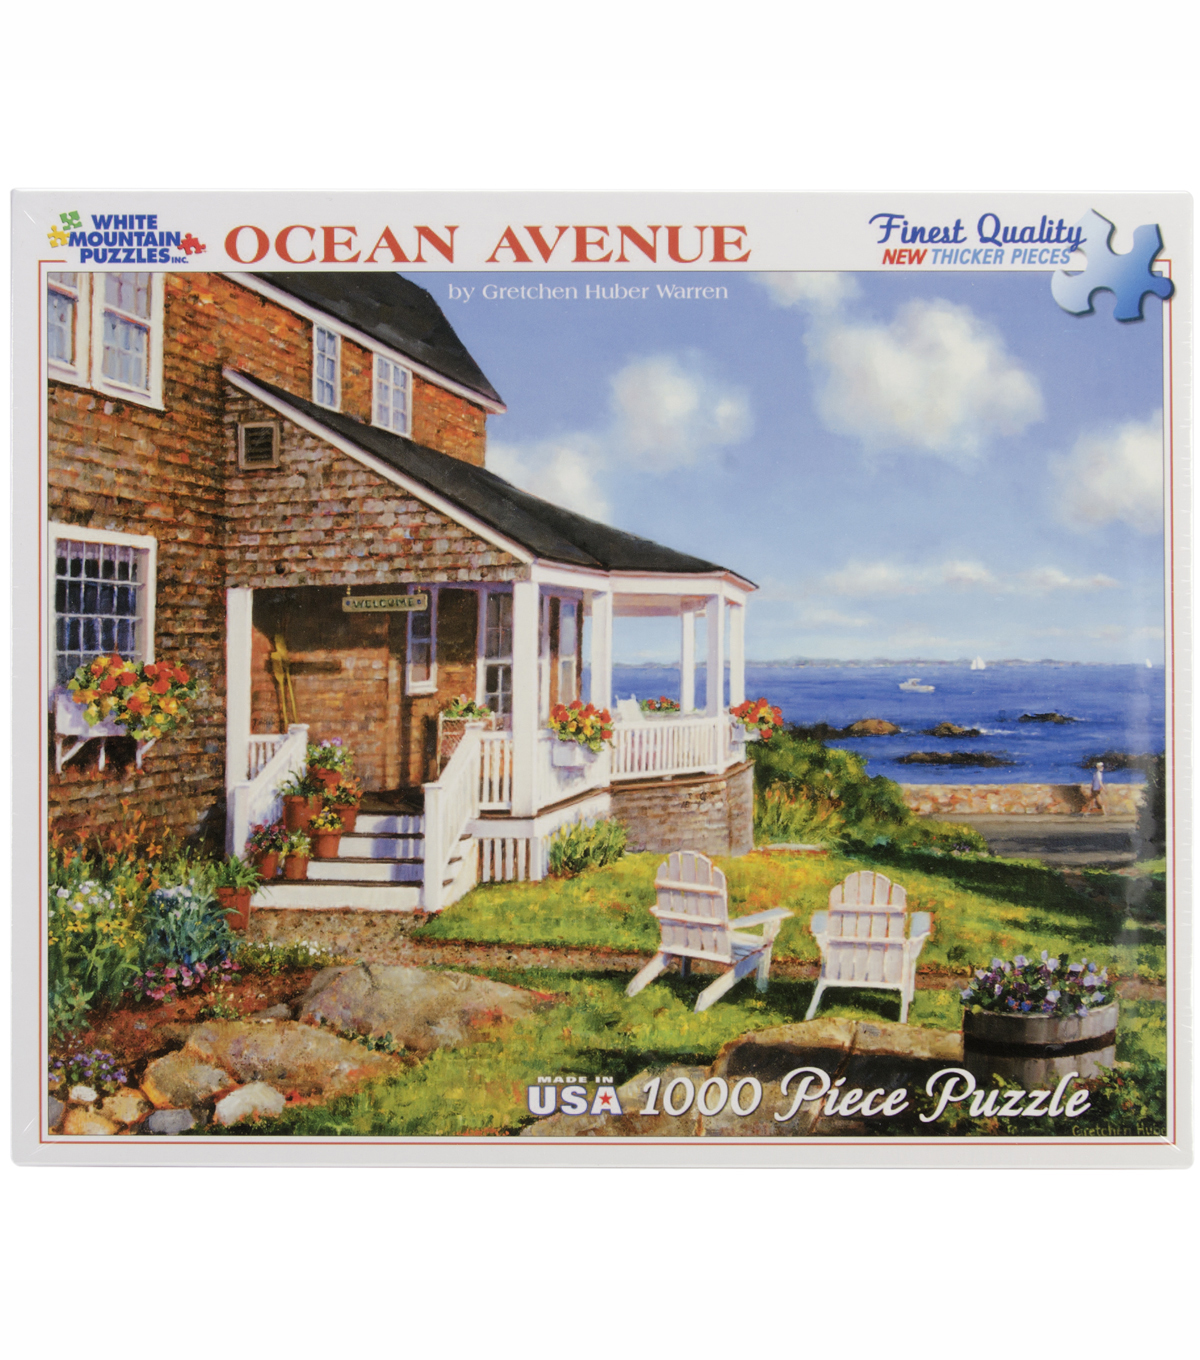 White Mountain Puzzles Jigsaw Puzzle Ocean Avenue